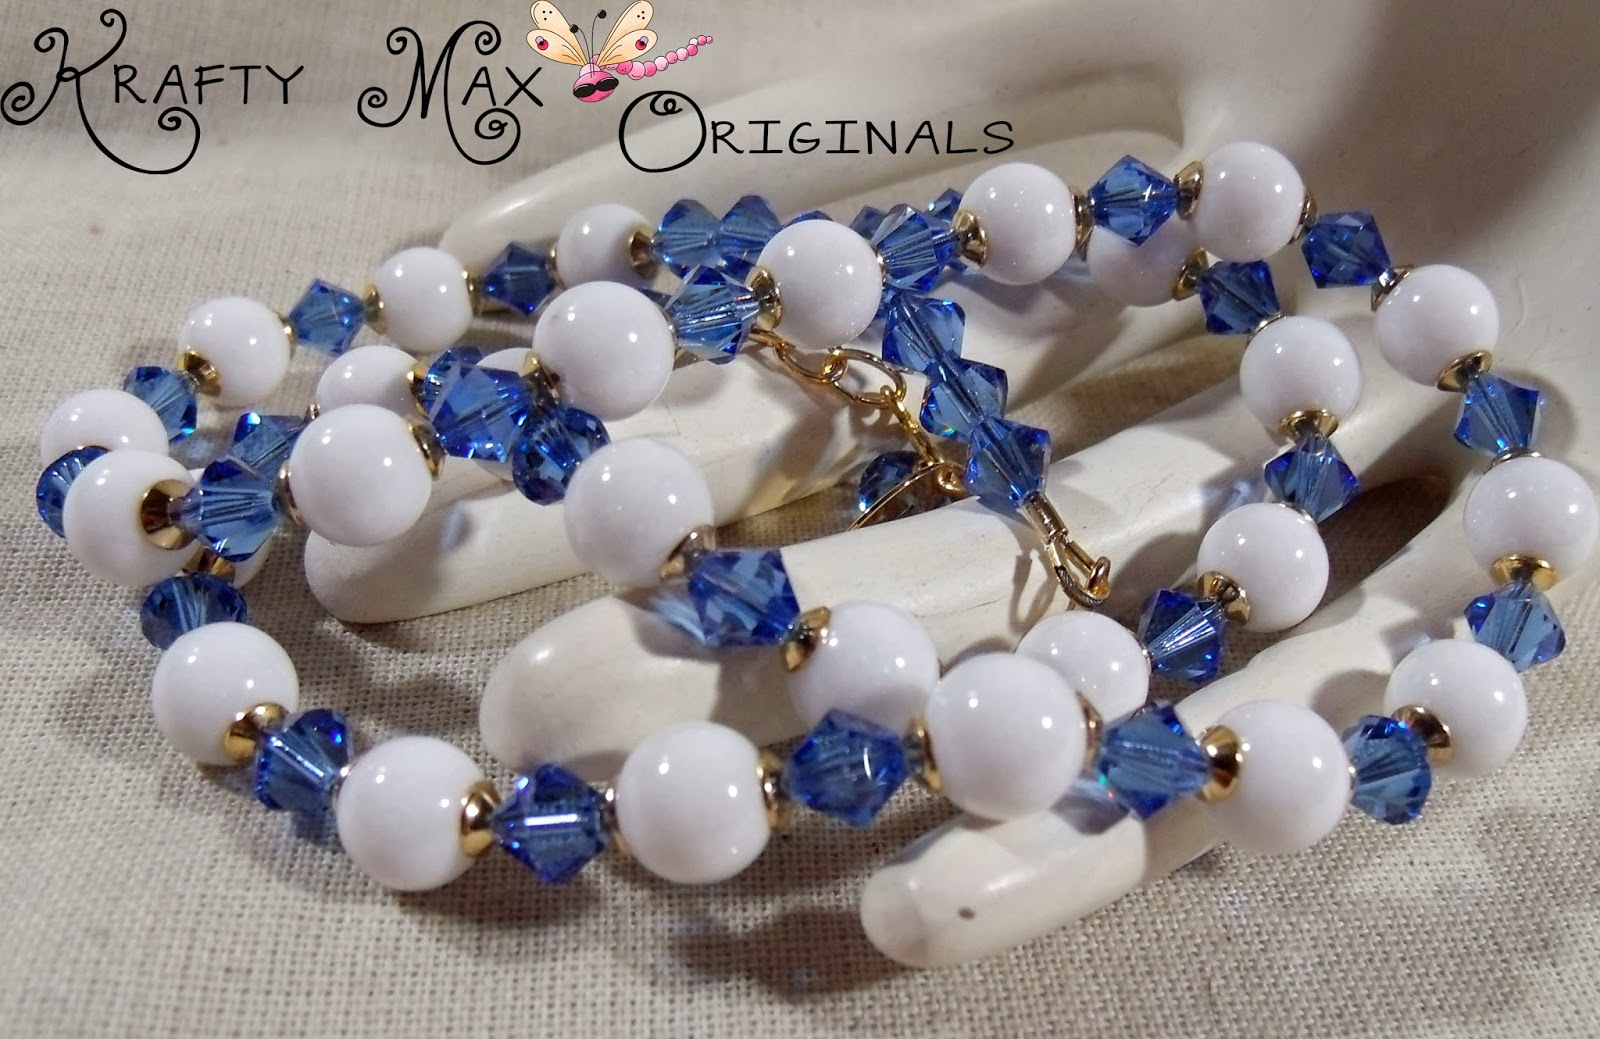 http://www.artfire.com/ext/shop/product_view/KraftyMax/8548358/white_mountain_jade_andamp_blue_swarovski_crystals_w_gold_plated_findings/handmade/jewelry/sets/crystal